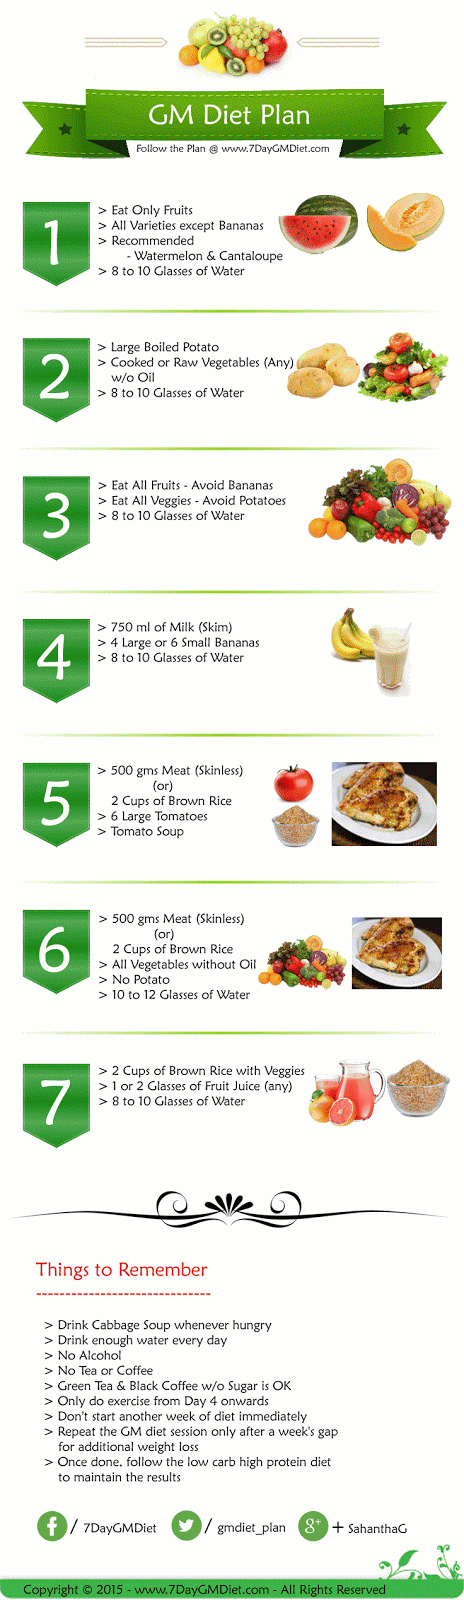 7 Days GM Diet Plan | General Motors Diet Chart for Weight ...